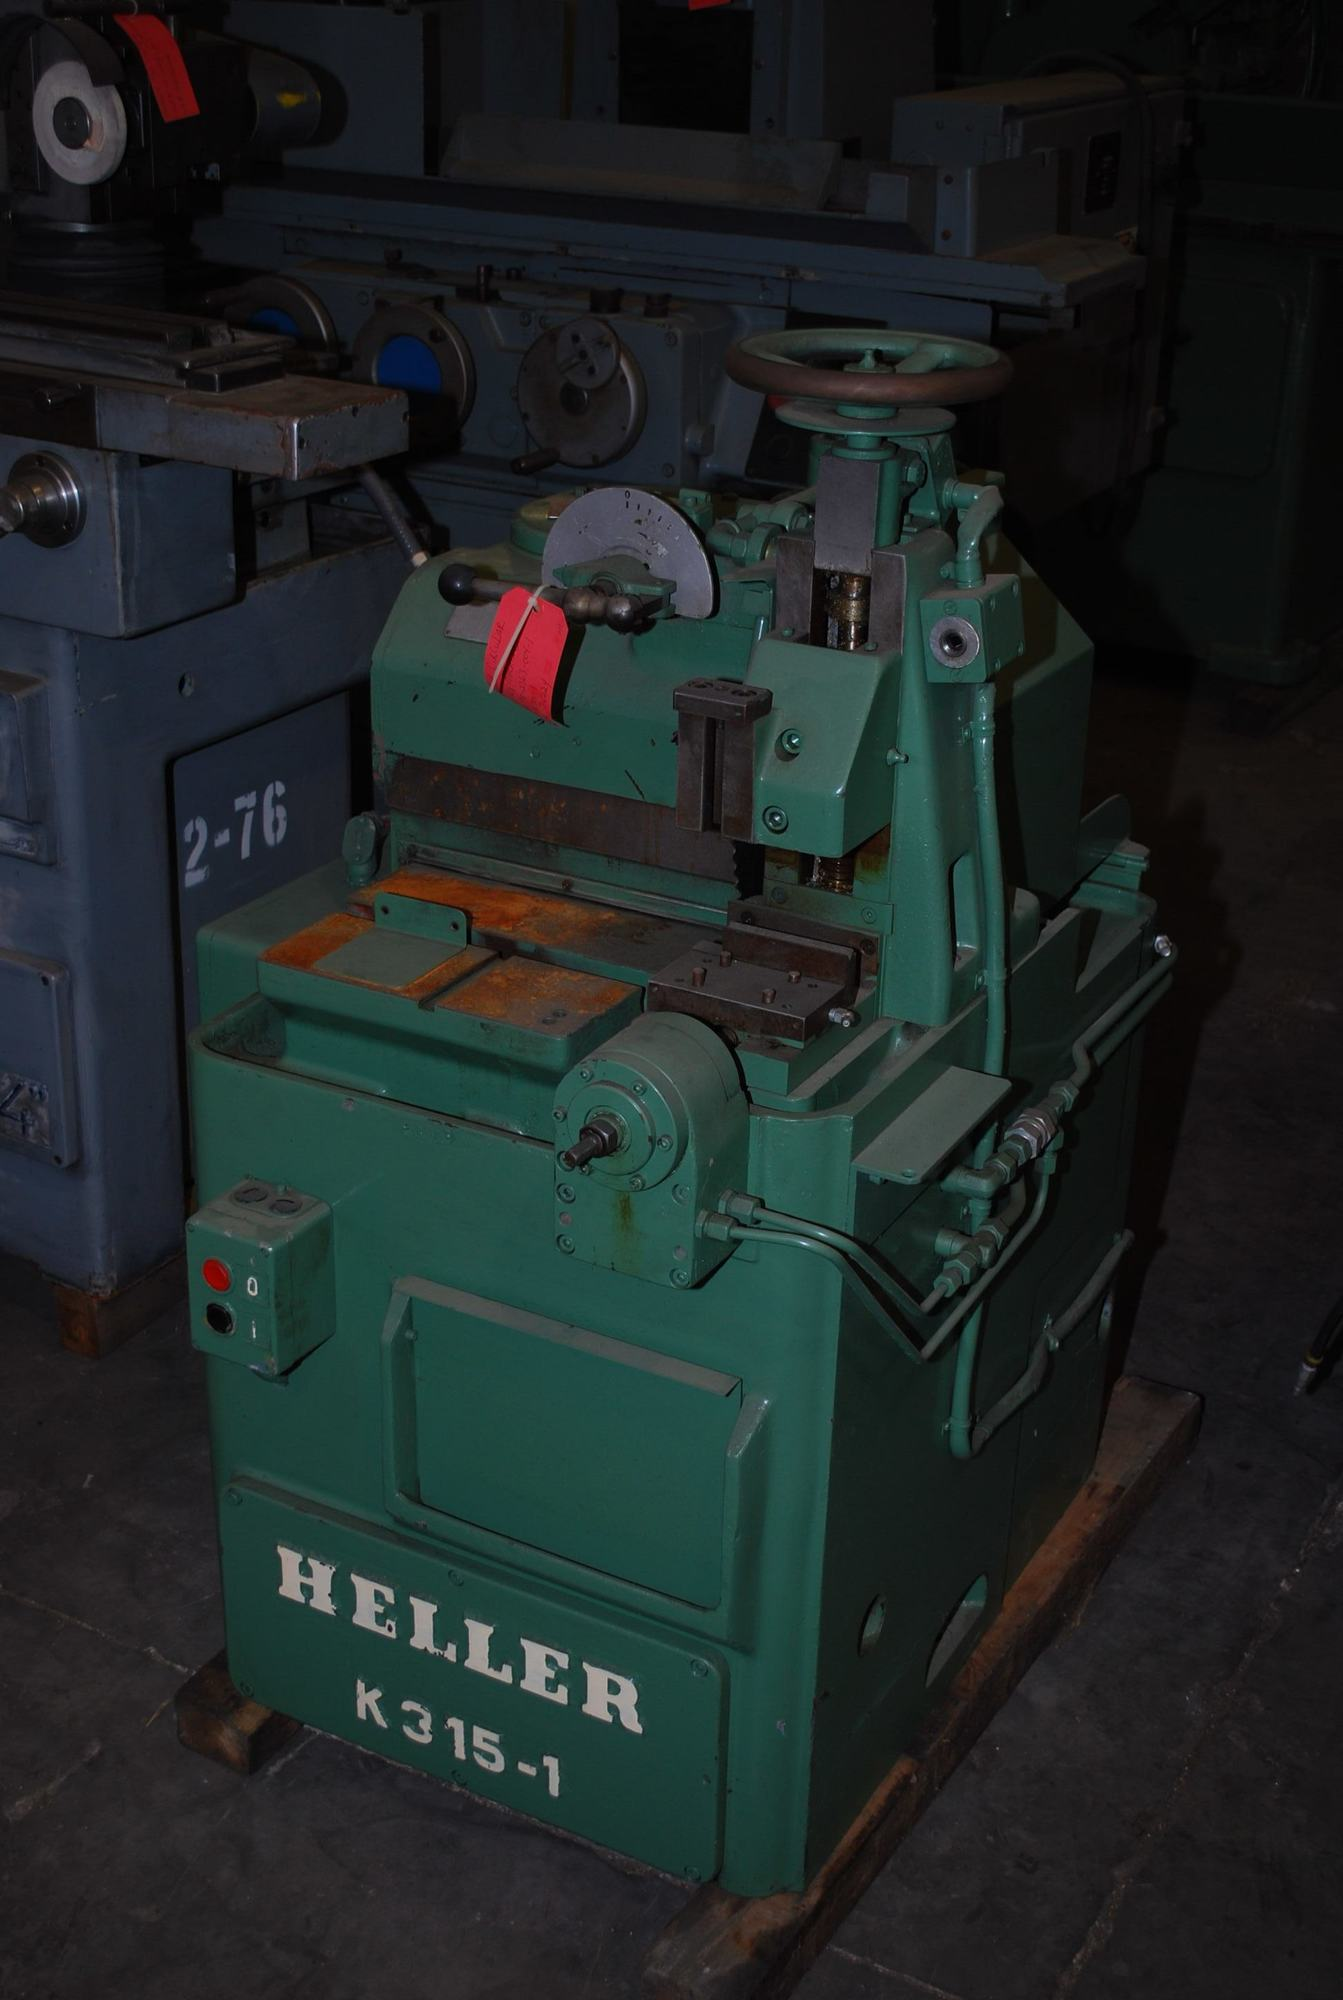 "3-3/4"" Heller #K315-1, circular cold saw, 12"" blade, 32.4-162 RPM, pwr blade feed, #4239"